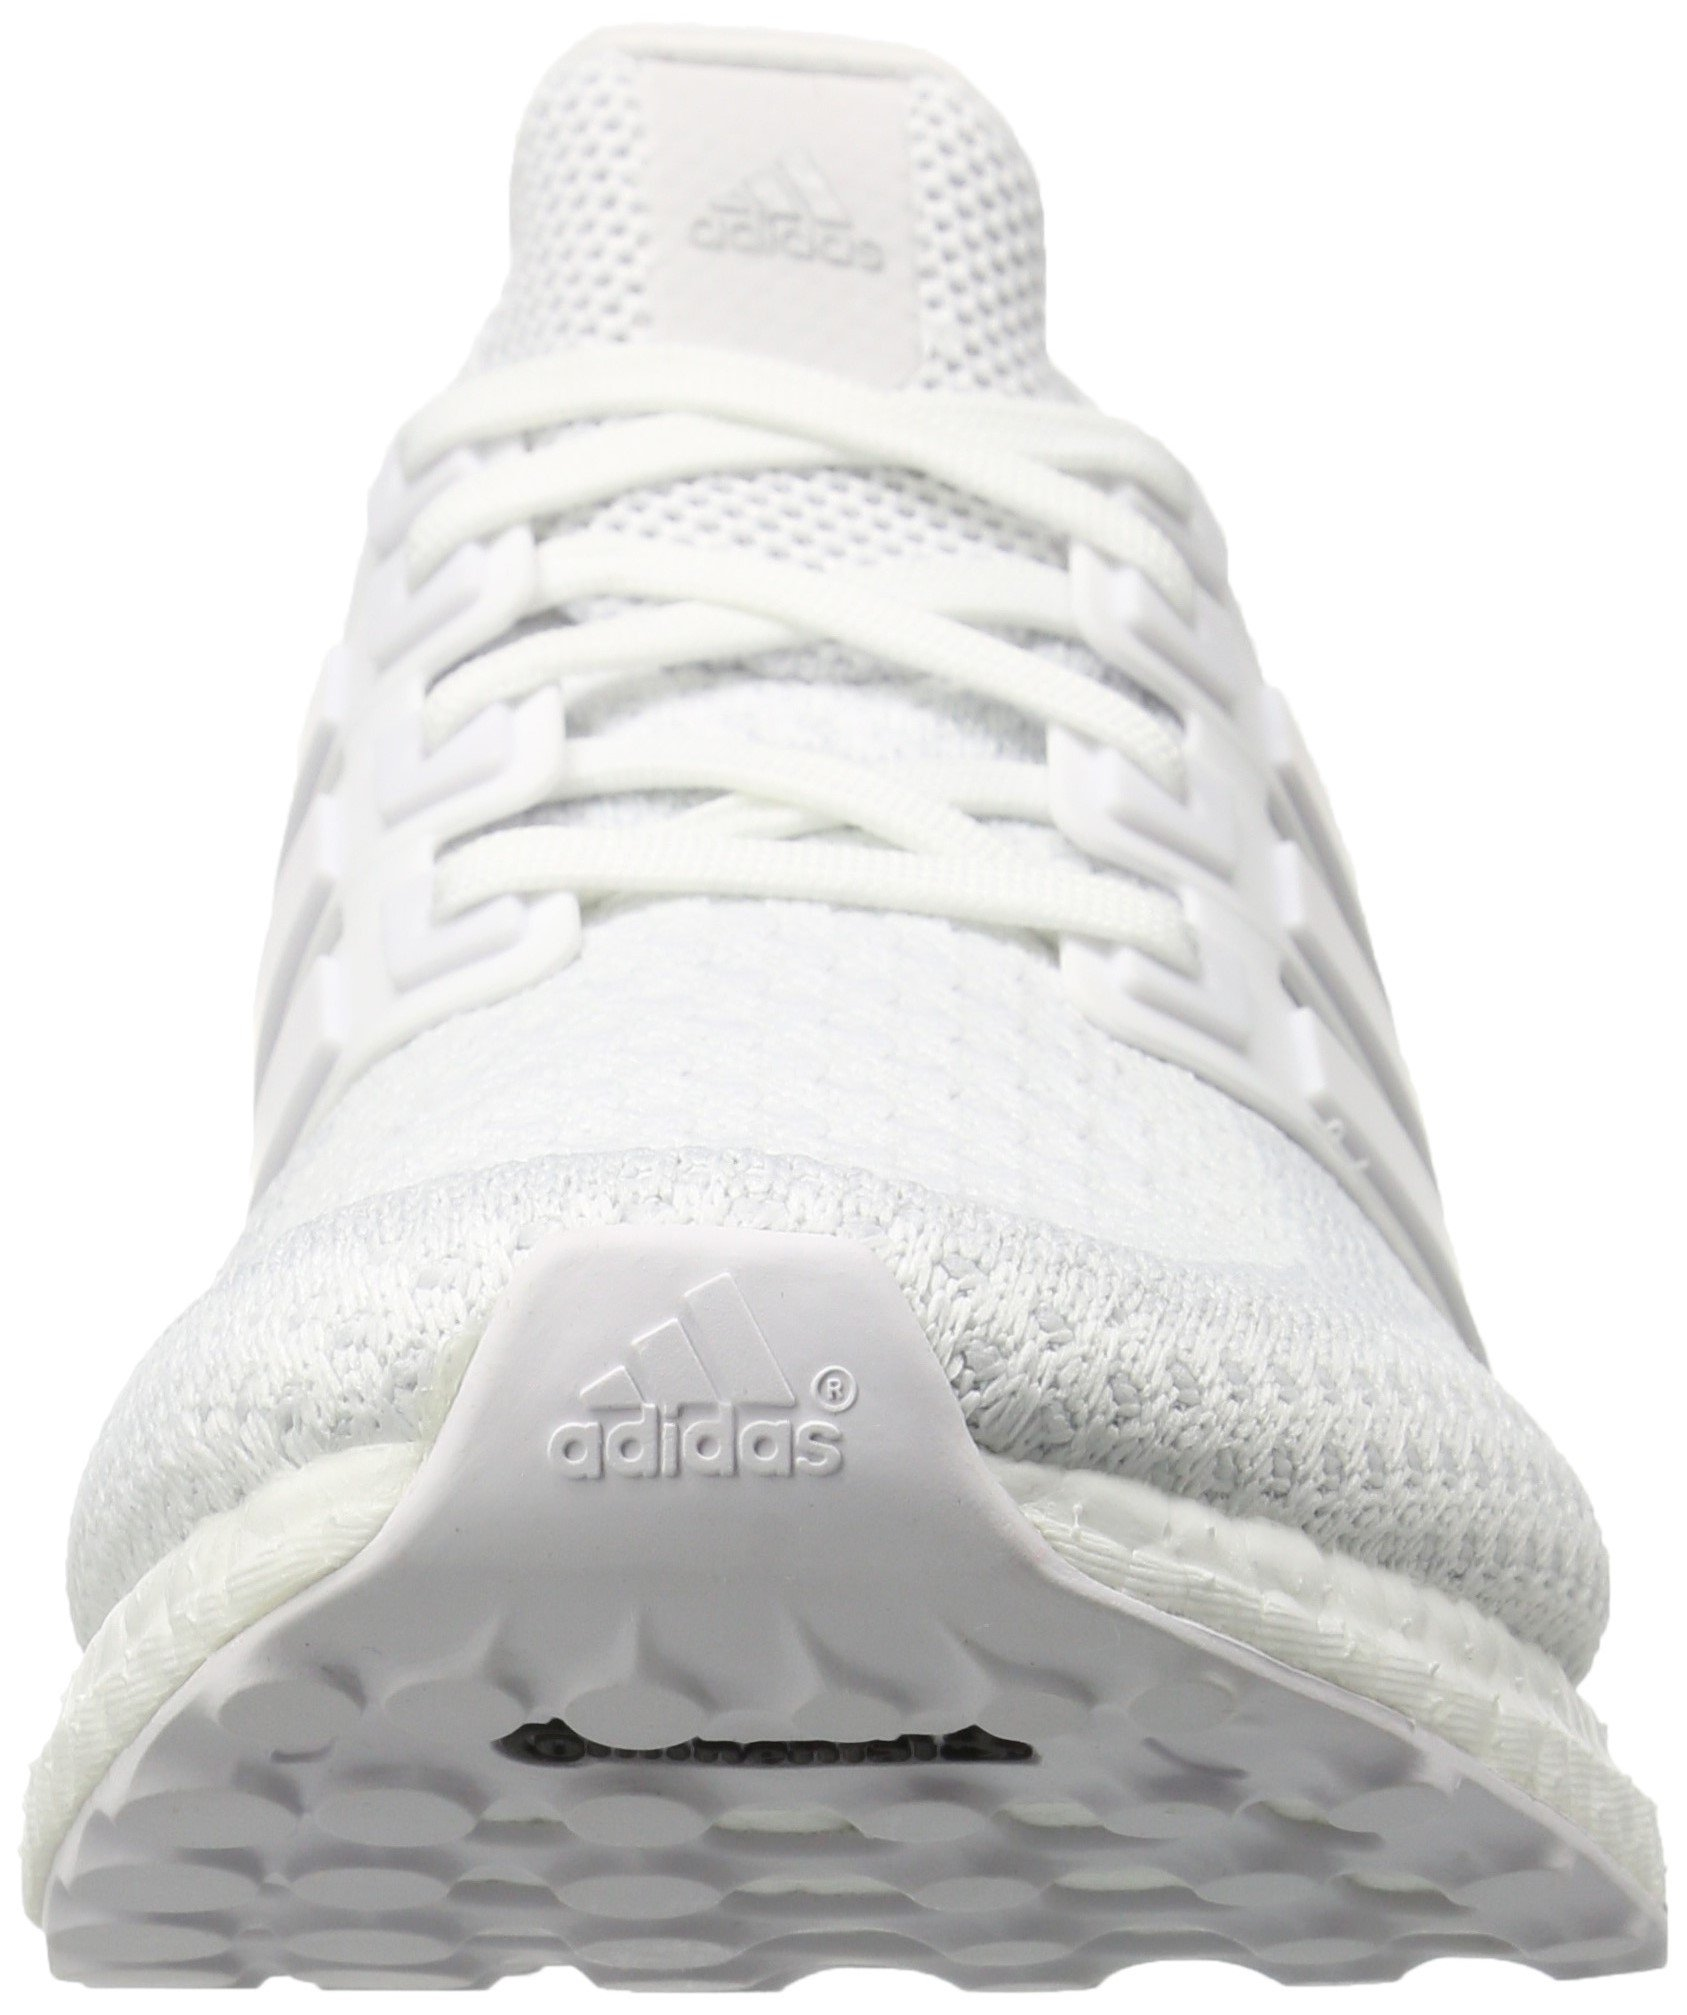 7155wIxQRZL - adidas Ultra Boost M, Men's Competition Running Shoes Multicolour Size: 8 UK M Crystal White